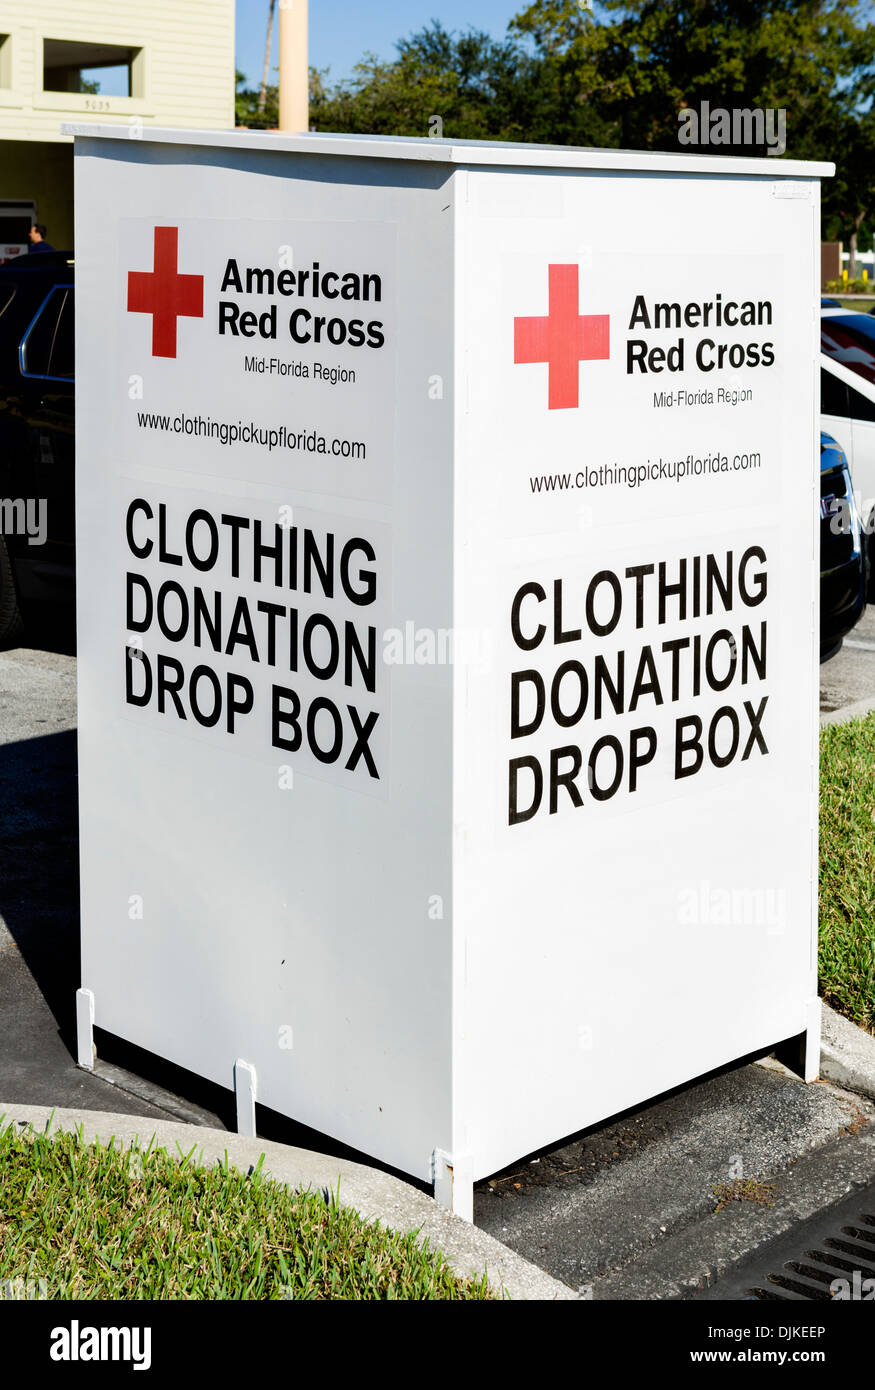 American Red Cross Clothing Donation Drop Box, Kissimmee, Orlando, Central Florida, USA - Stock Image